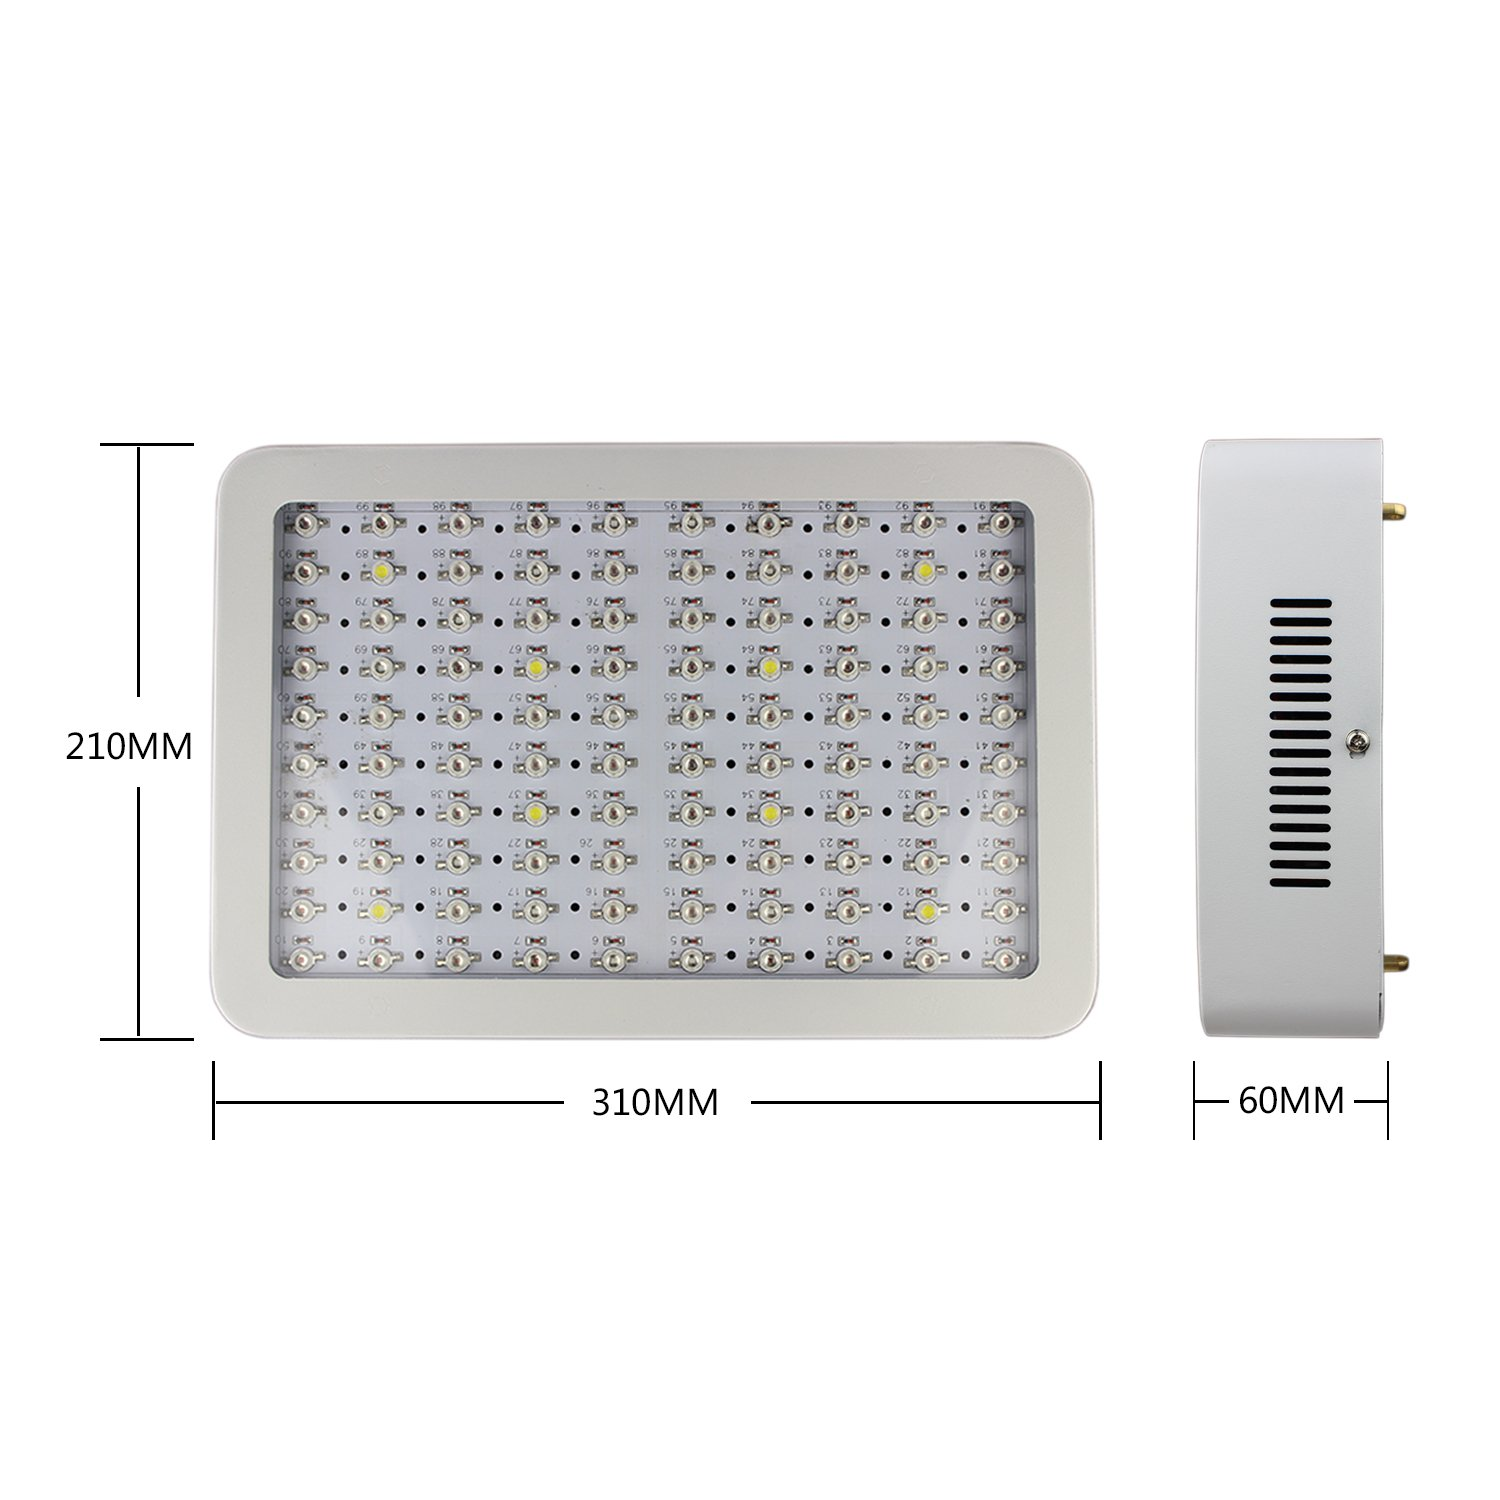 RYSA LIGHT LED Indoor Grow Light 1000W Full Spectrum Double Chips Growing Lamps with UV IR for Garden Plants Veg Flower Hydroponic Greenhouse by RYSA LIGHT (Image #2)